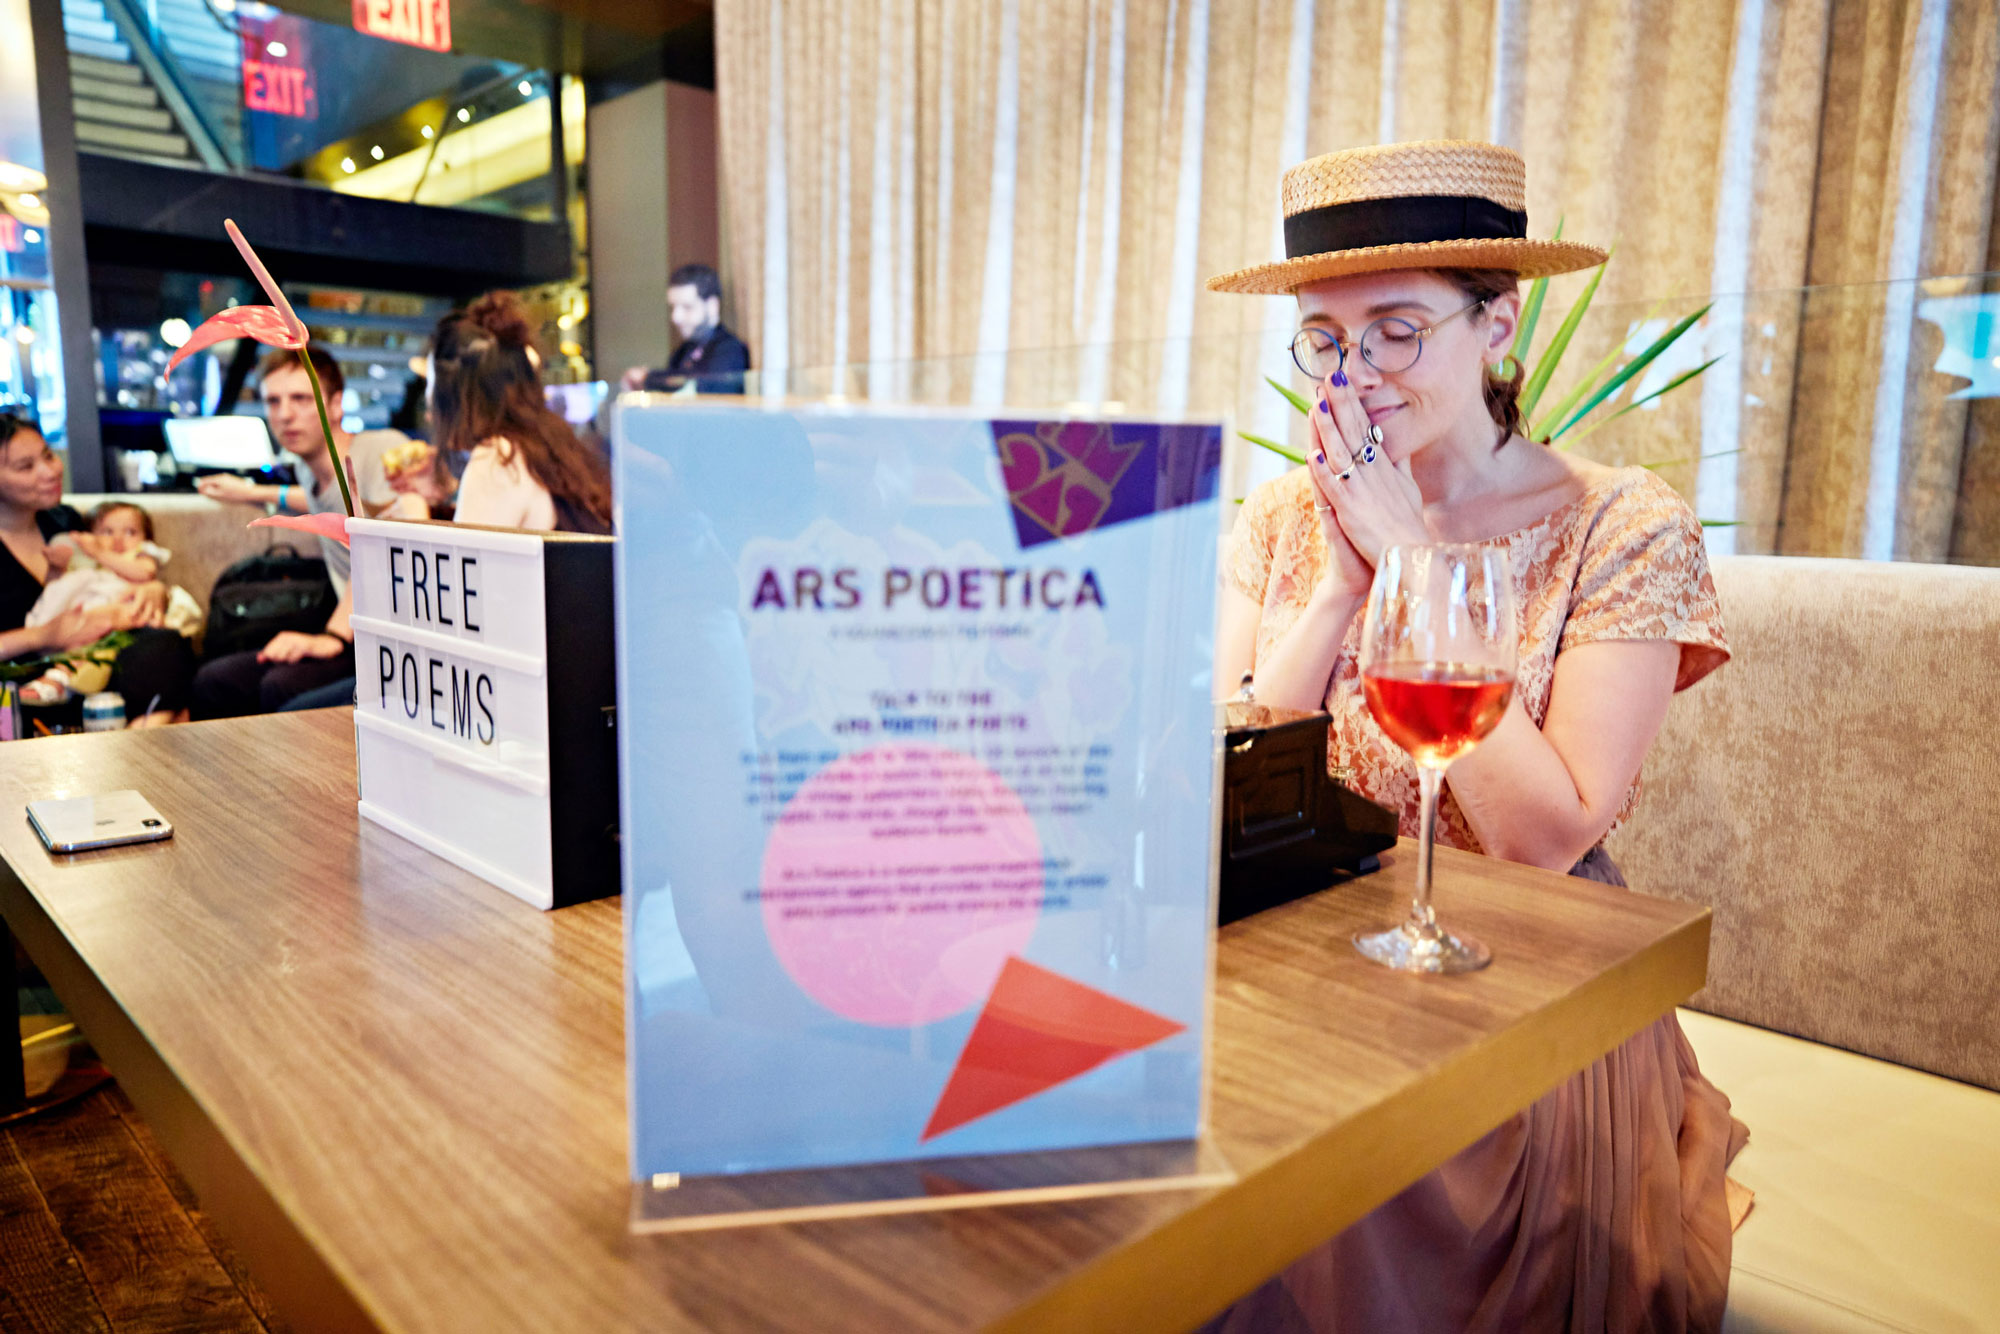 Squarespace-Summer-Party-Arms-Poetica-On-Demand-Poems-2019.jpg